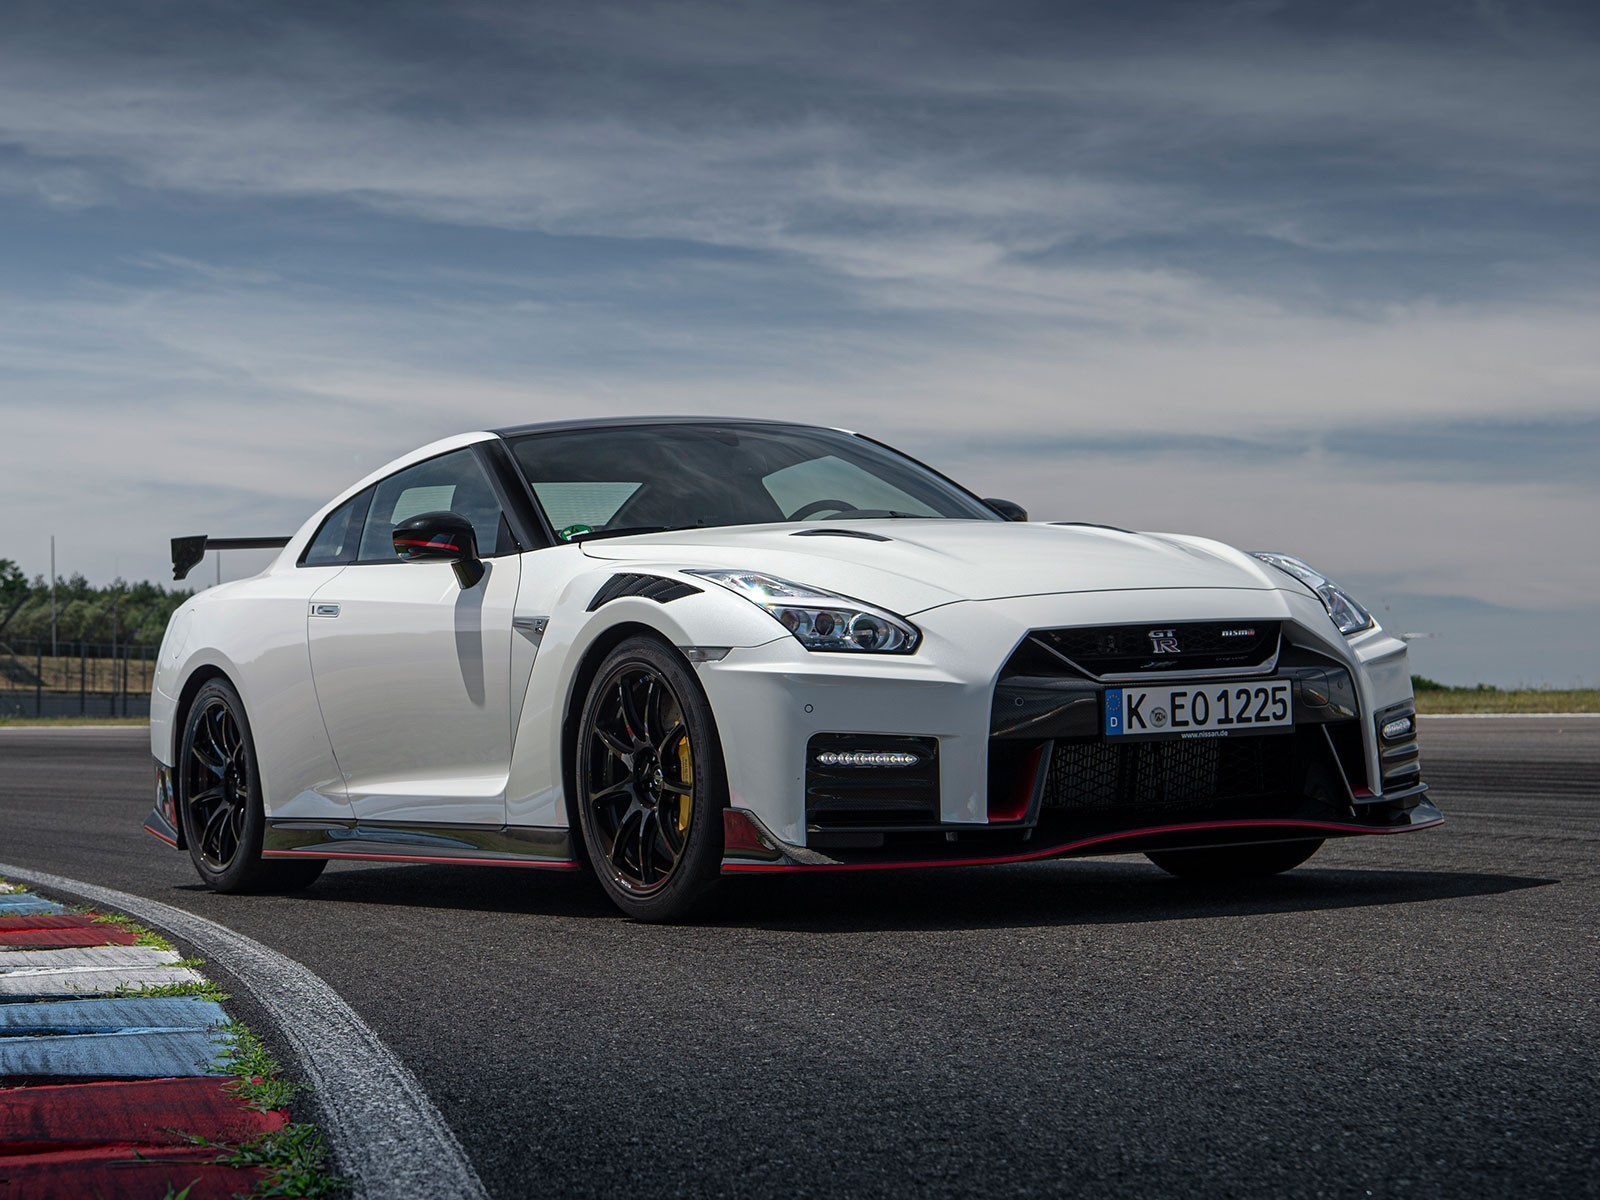 Nissan GT-R NISMO Modell 2020